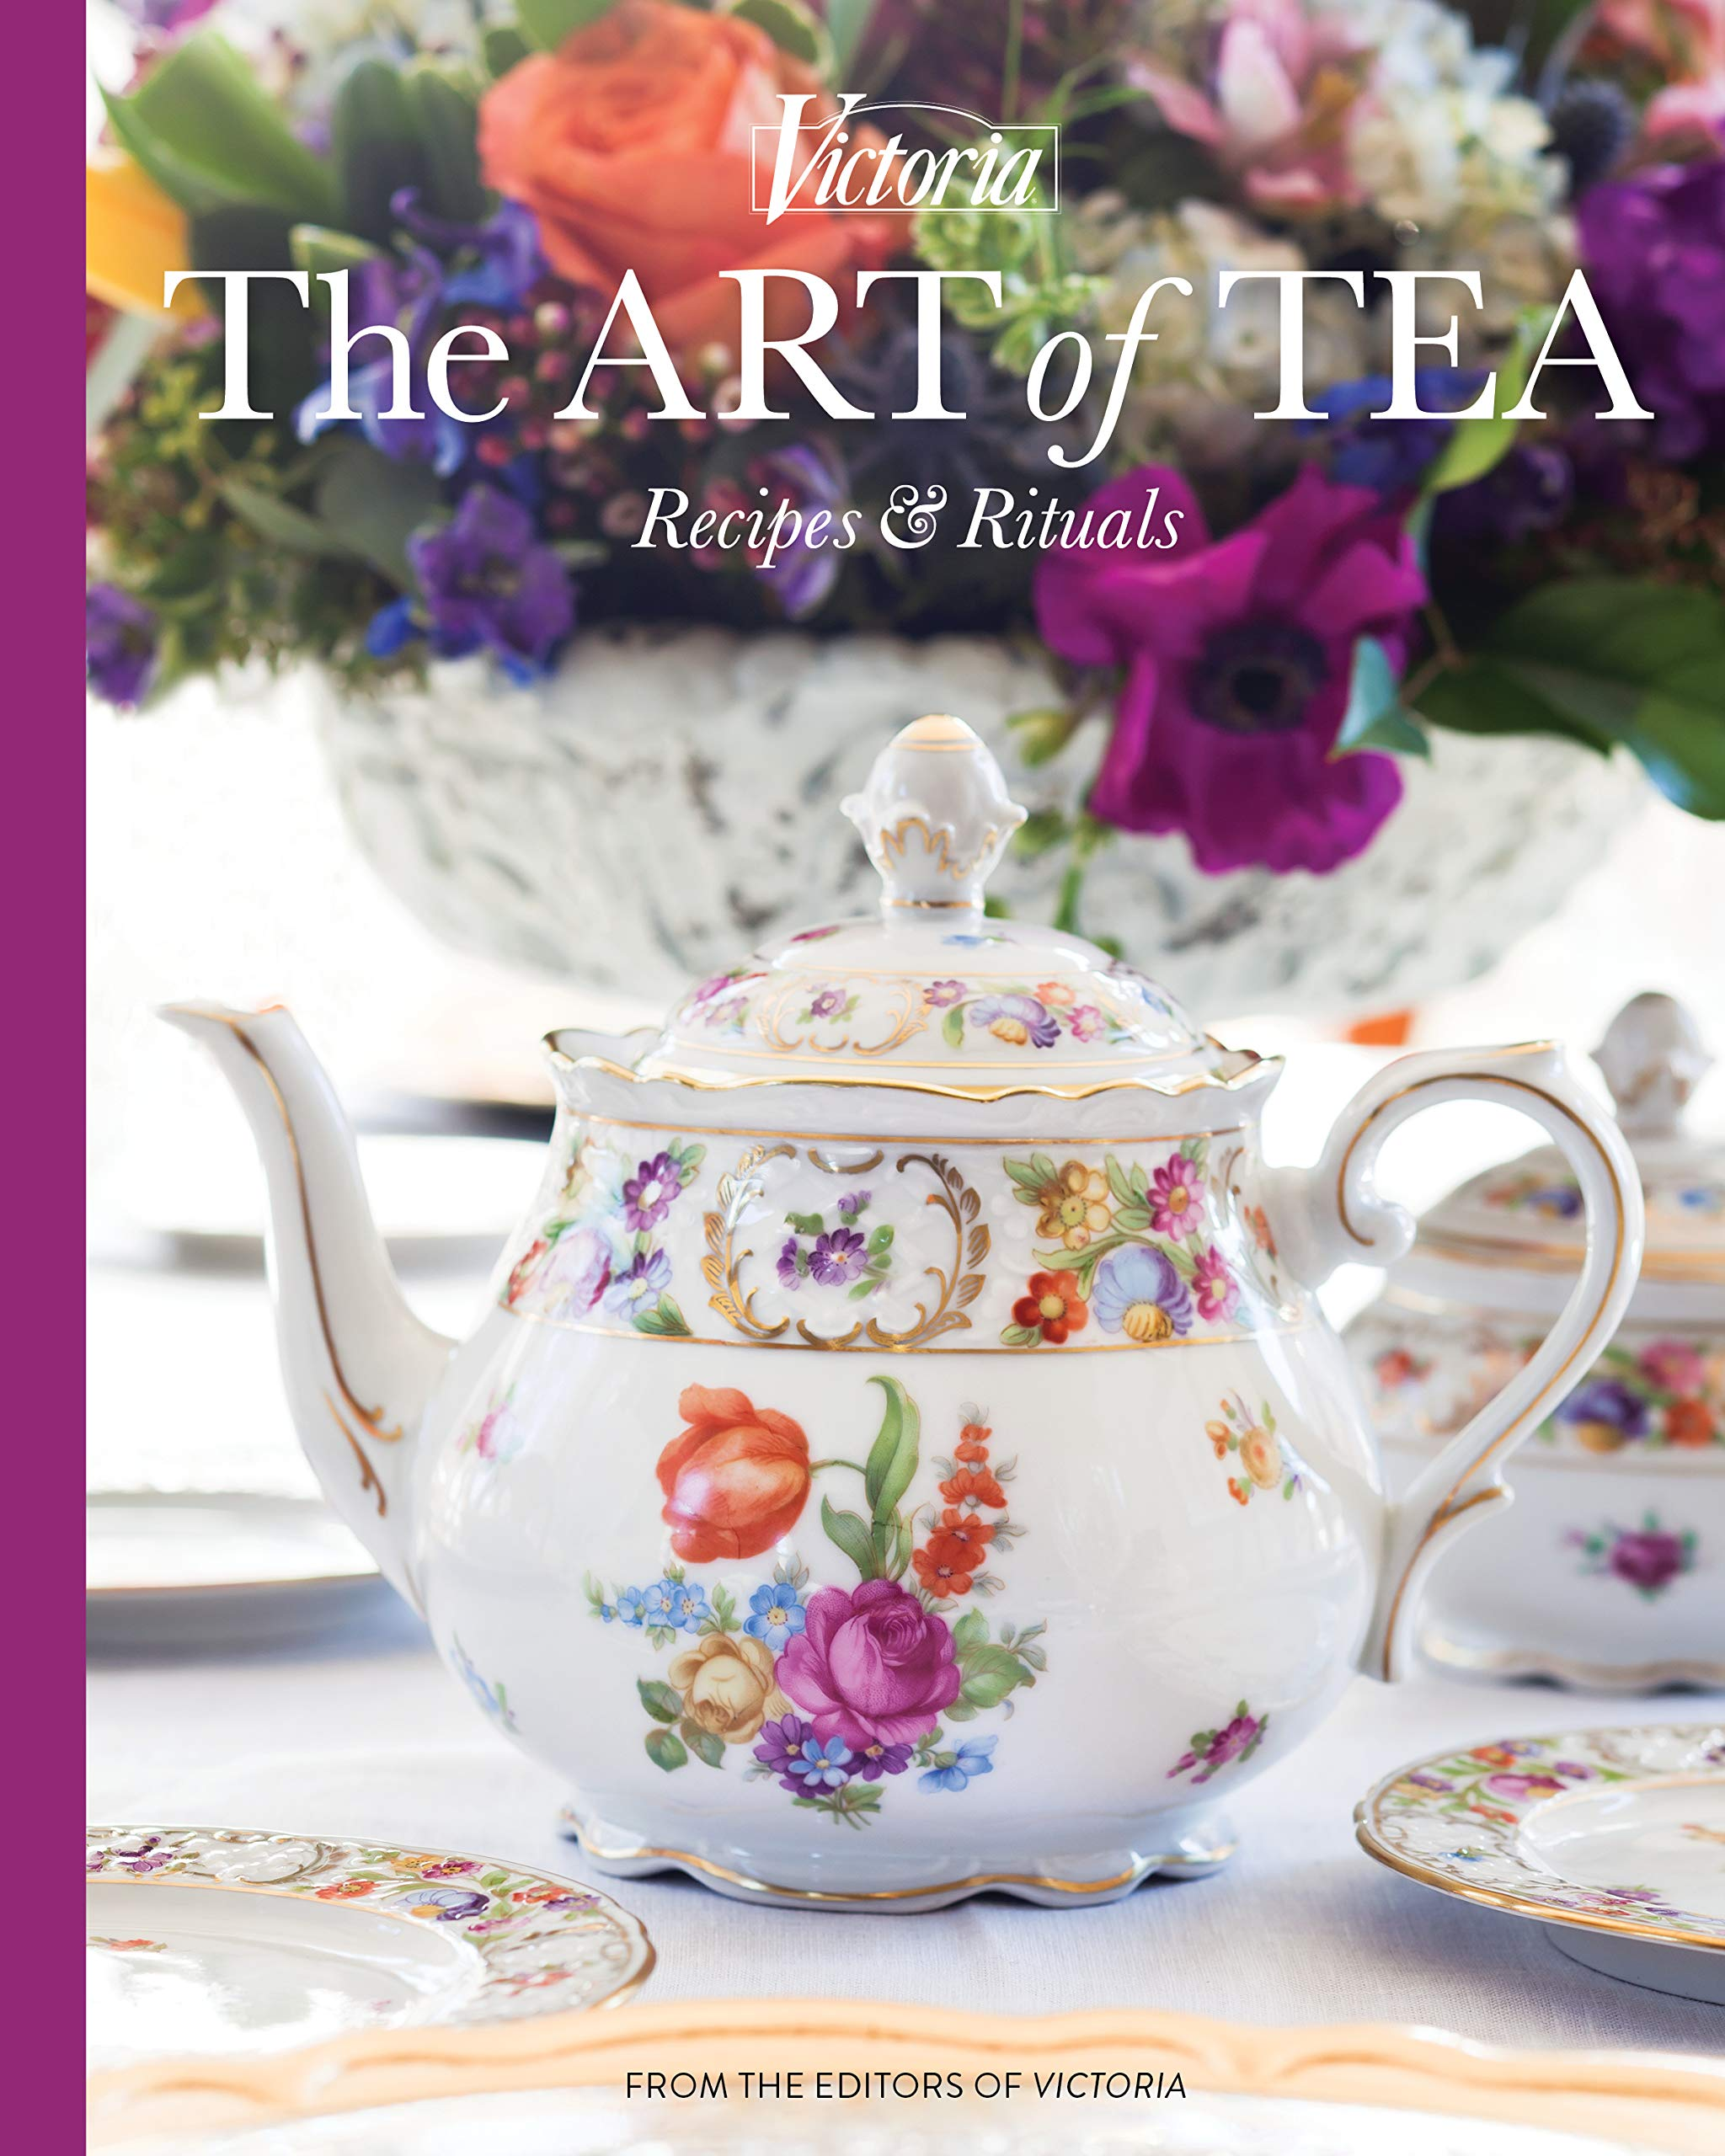 Victoria The Art of Tea: Recipes and Rituals (TeaTime)